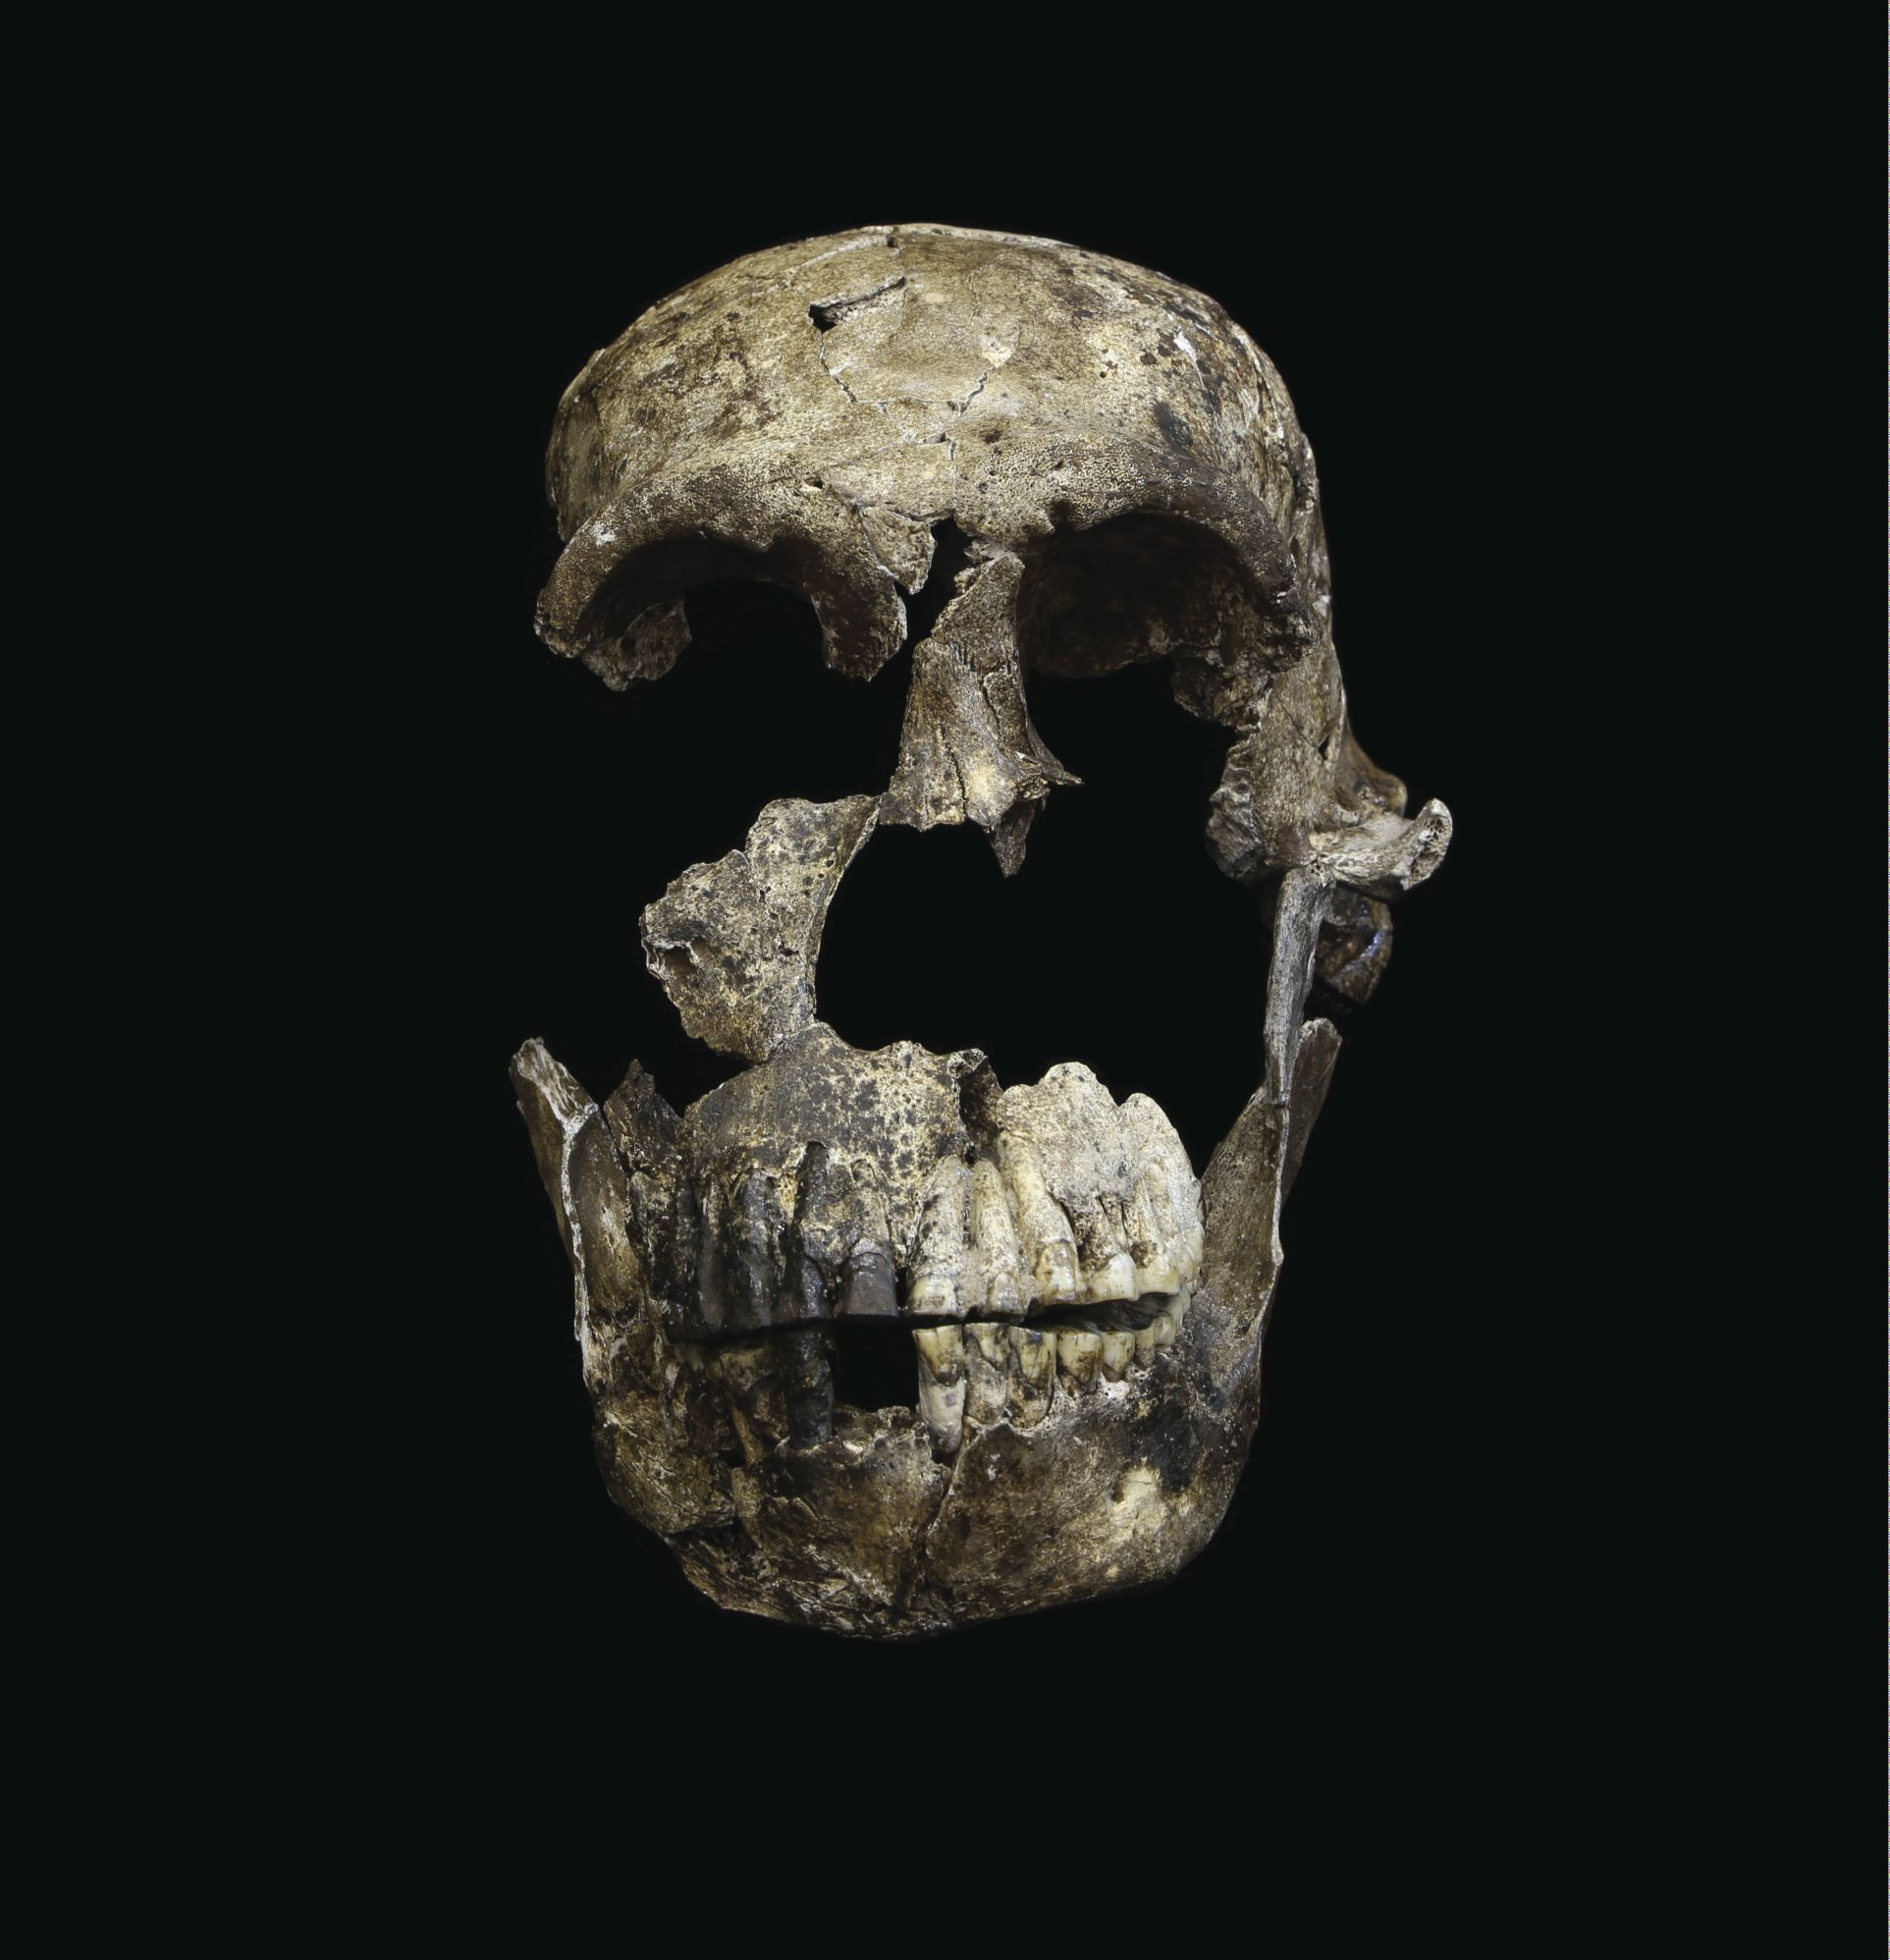 primitive humans or not A primitive form of hominid thought to have died out as modern humans evolved appears to have lived among us for years, new research into.